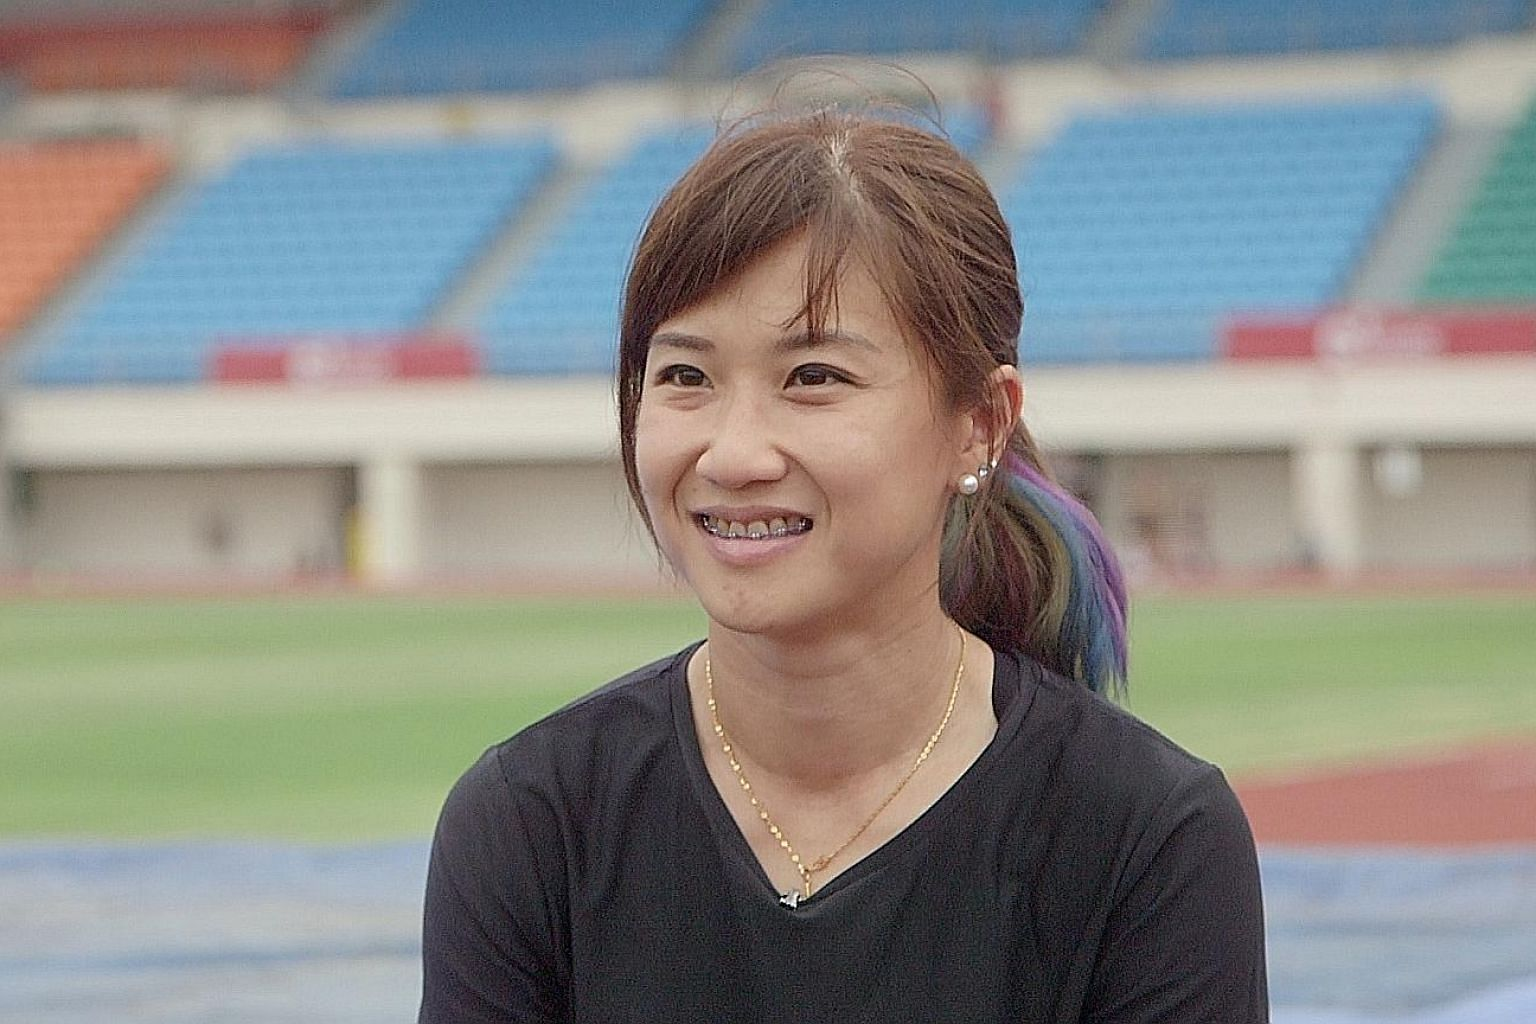 Pole vaulter Rachel Yang had criticised an SA staff member for being negligent.